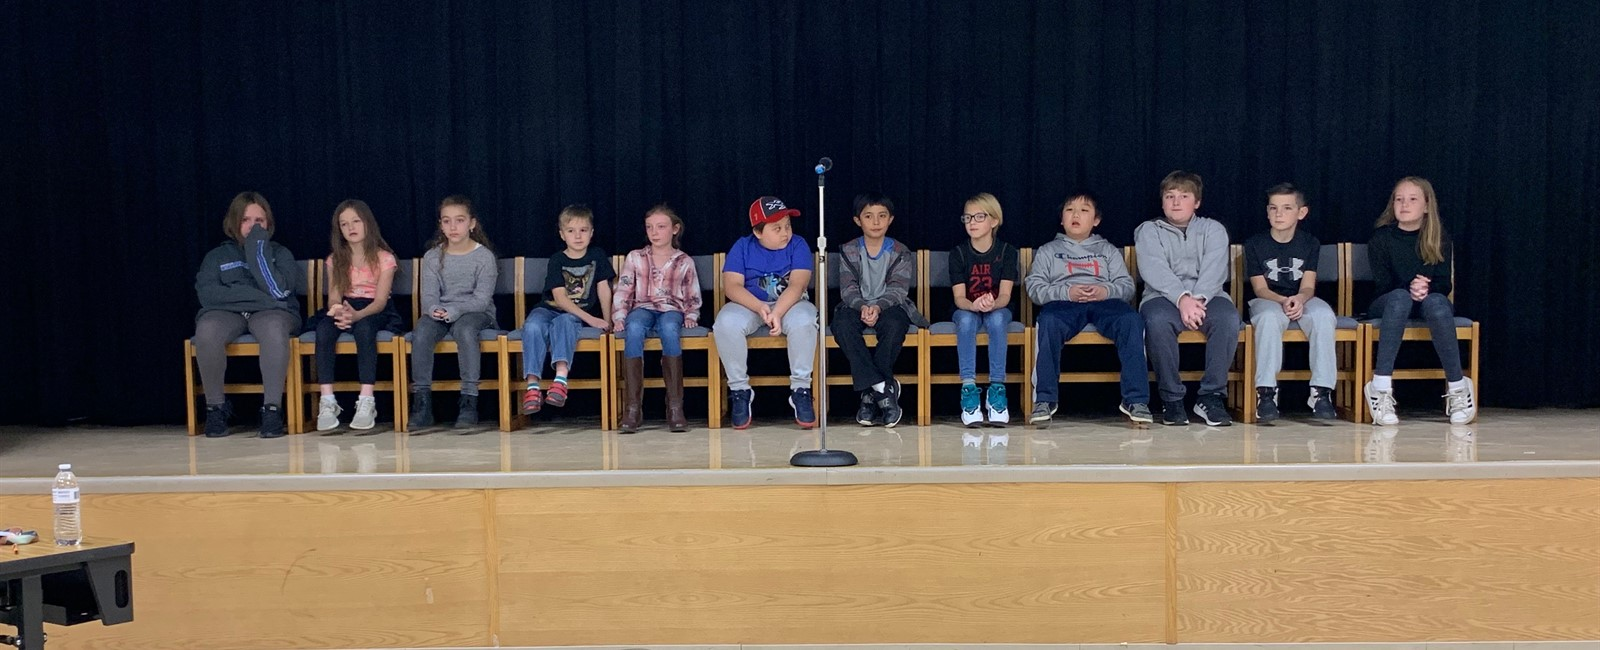 A job well done to all of this year's Spelling Bee participants!